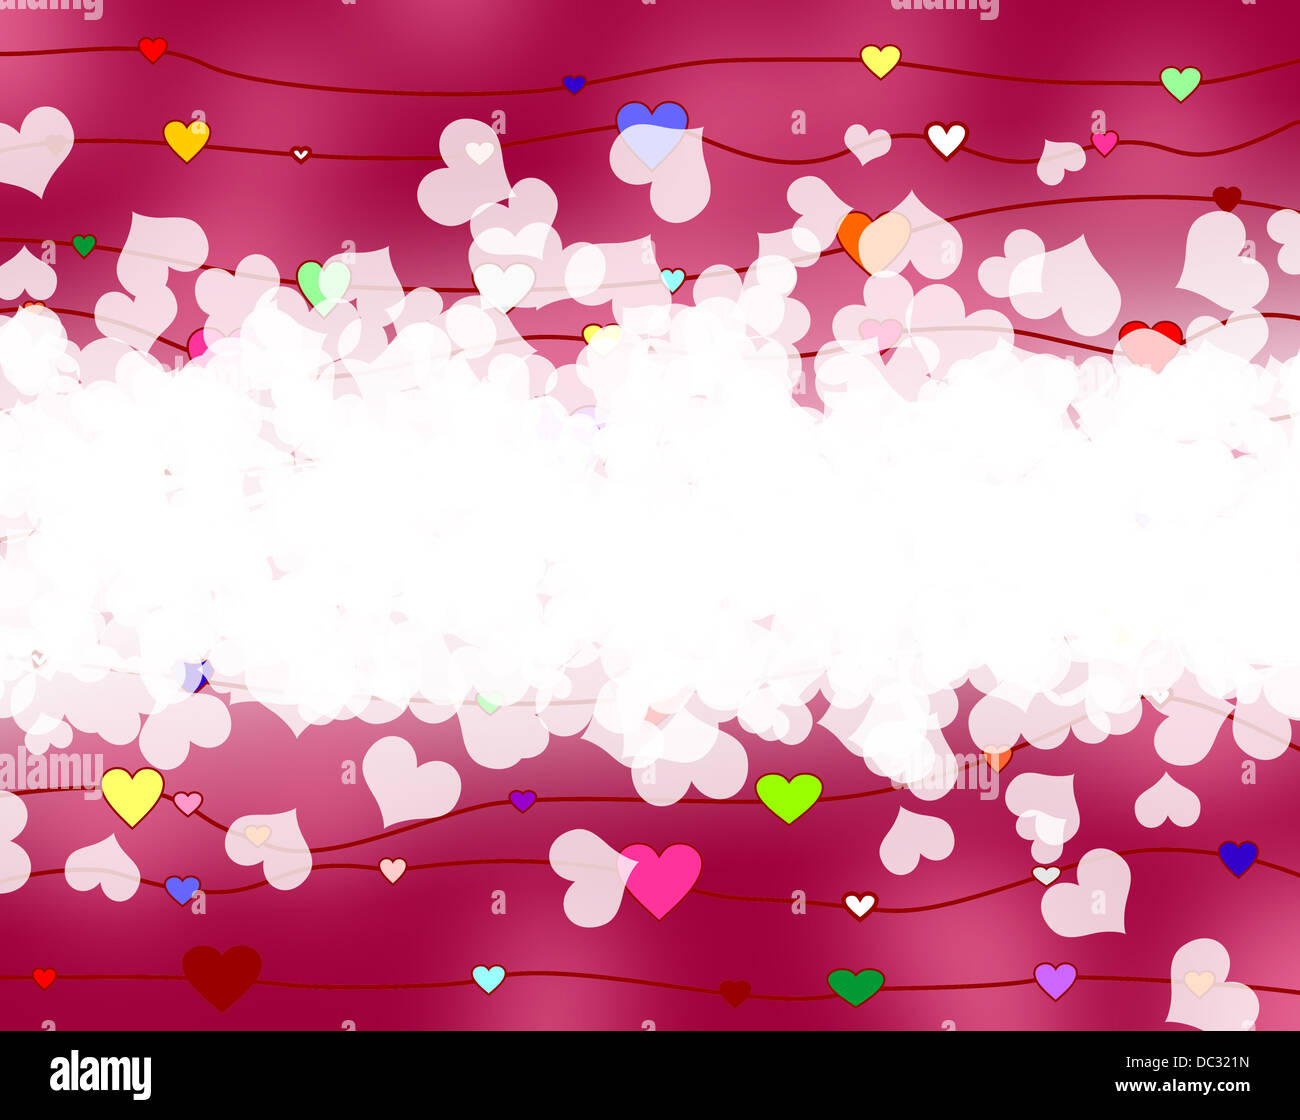 love hearts - Stock Image